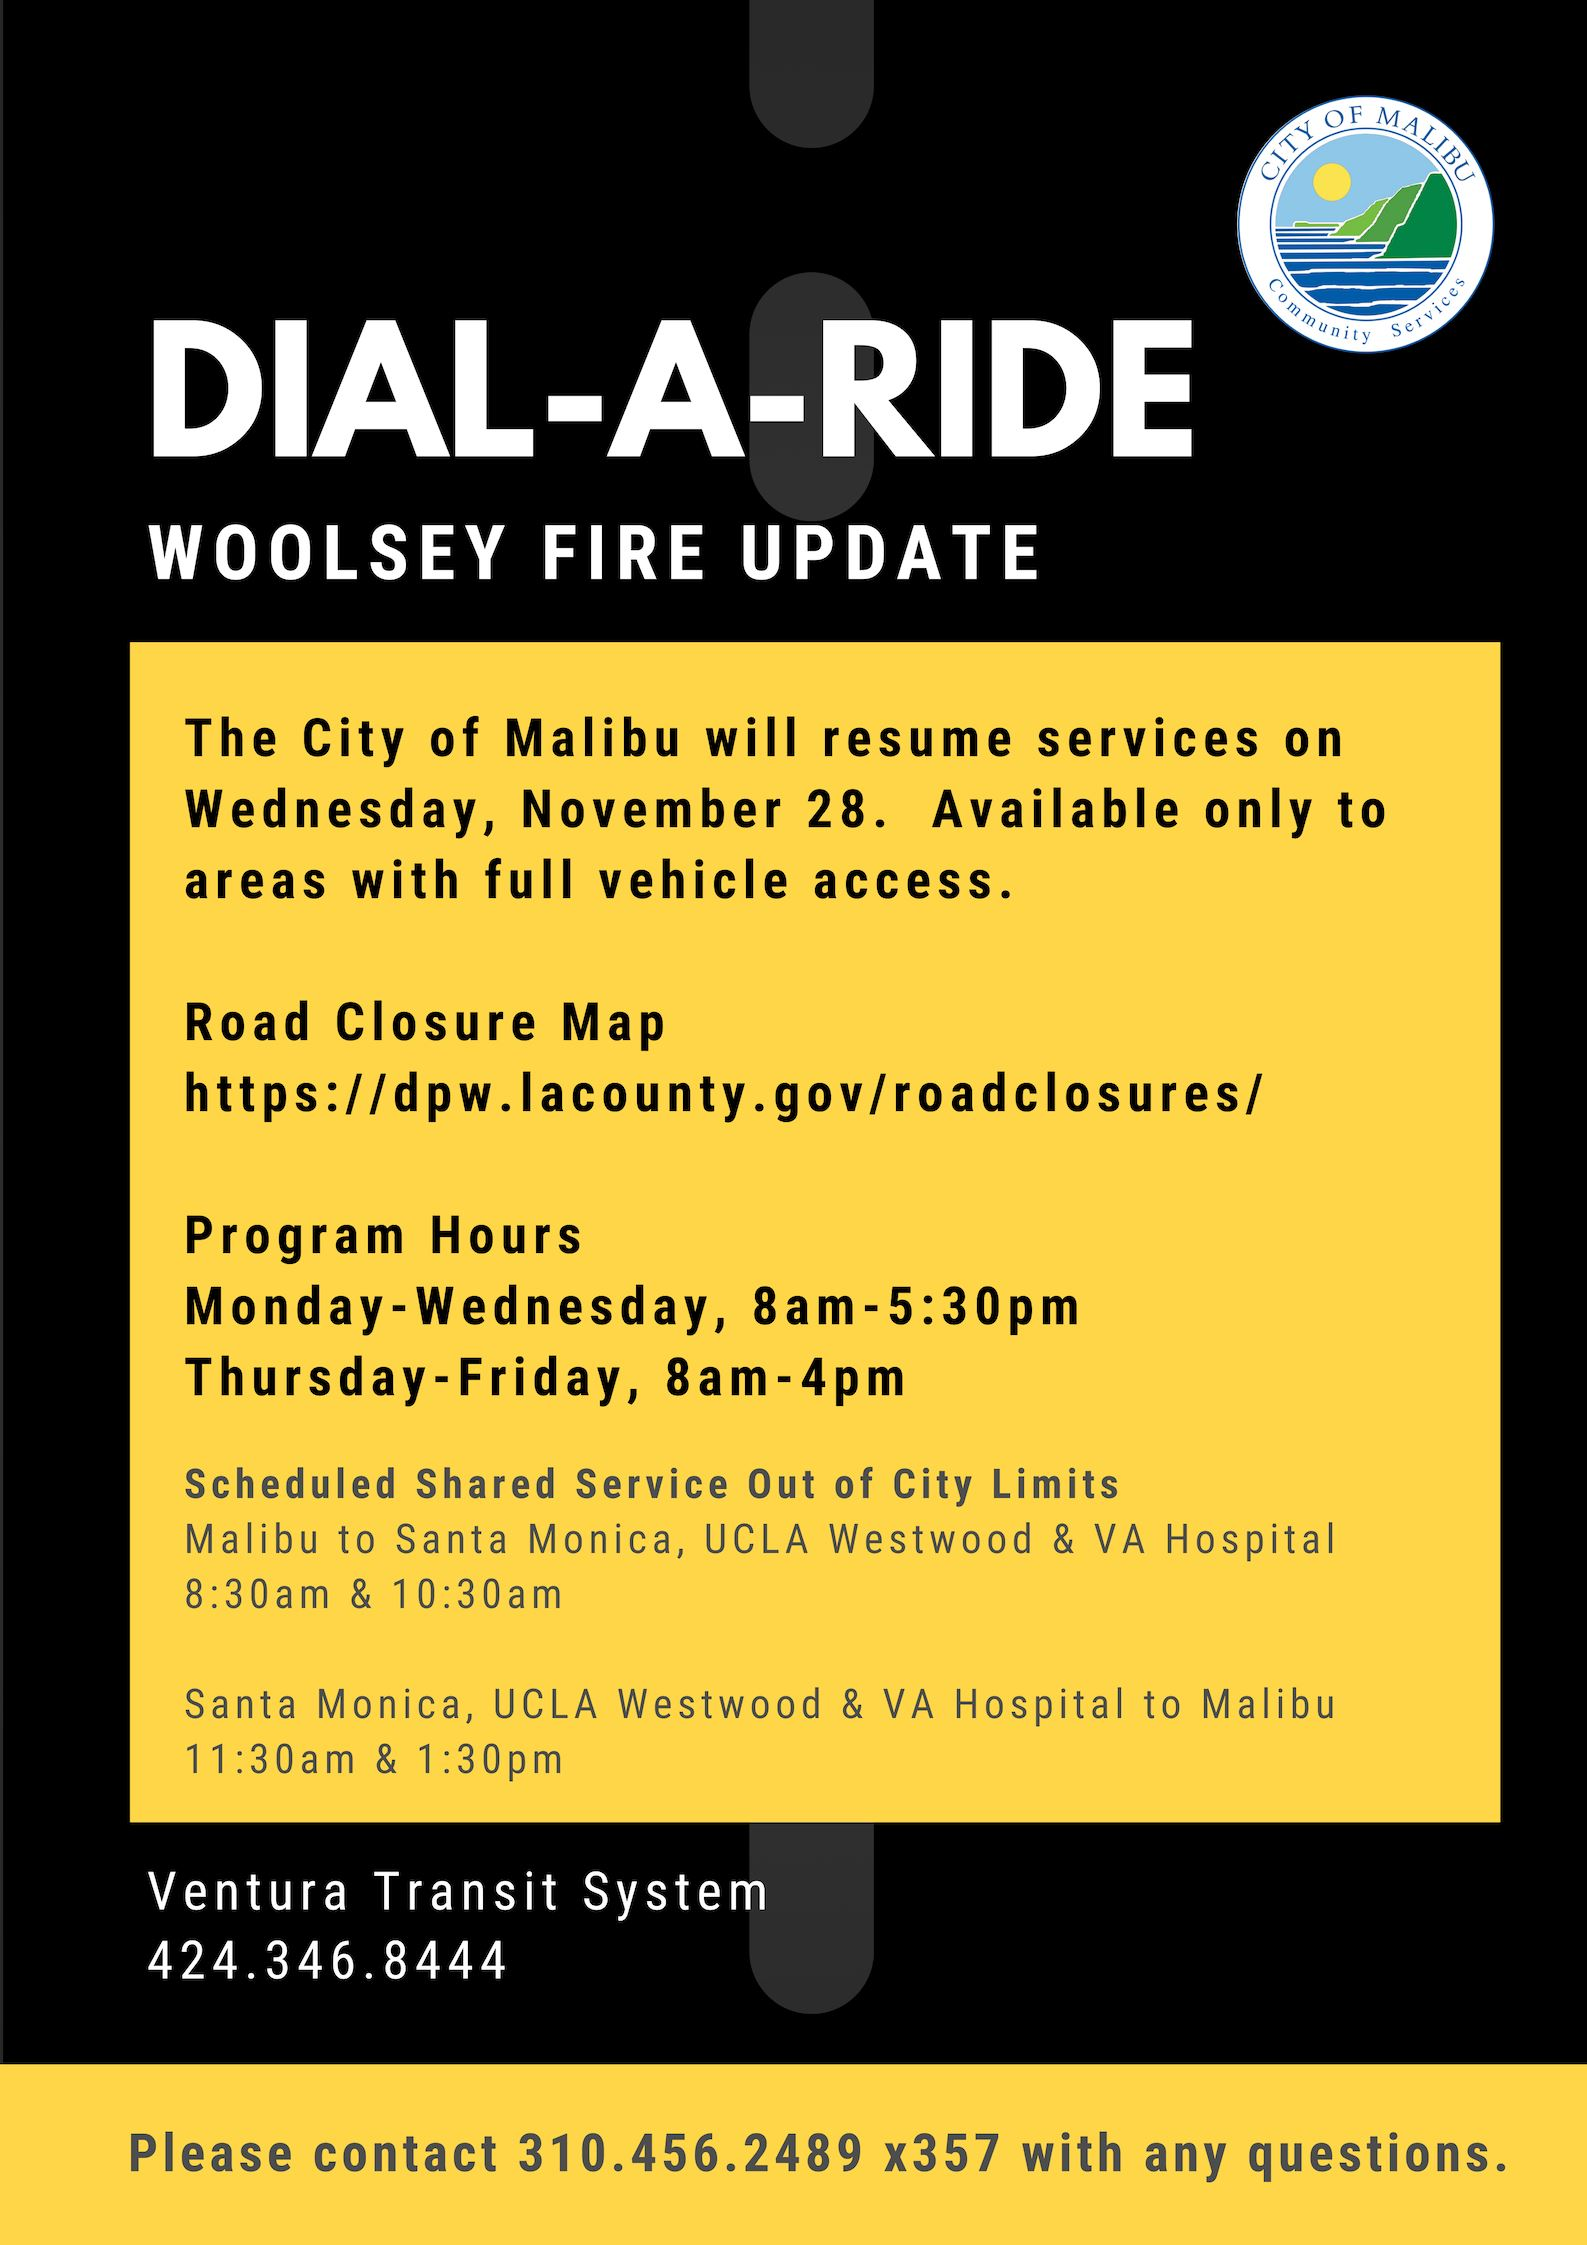 Dial-A-Ride Woolsey Fire Update